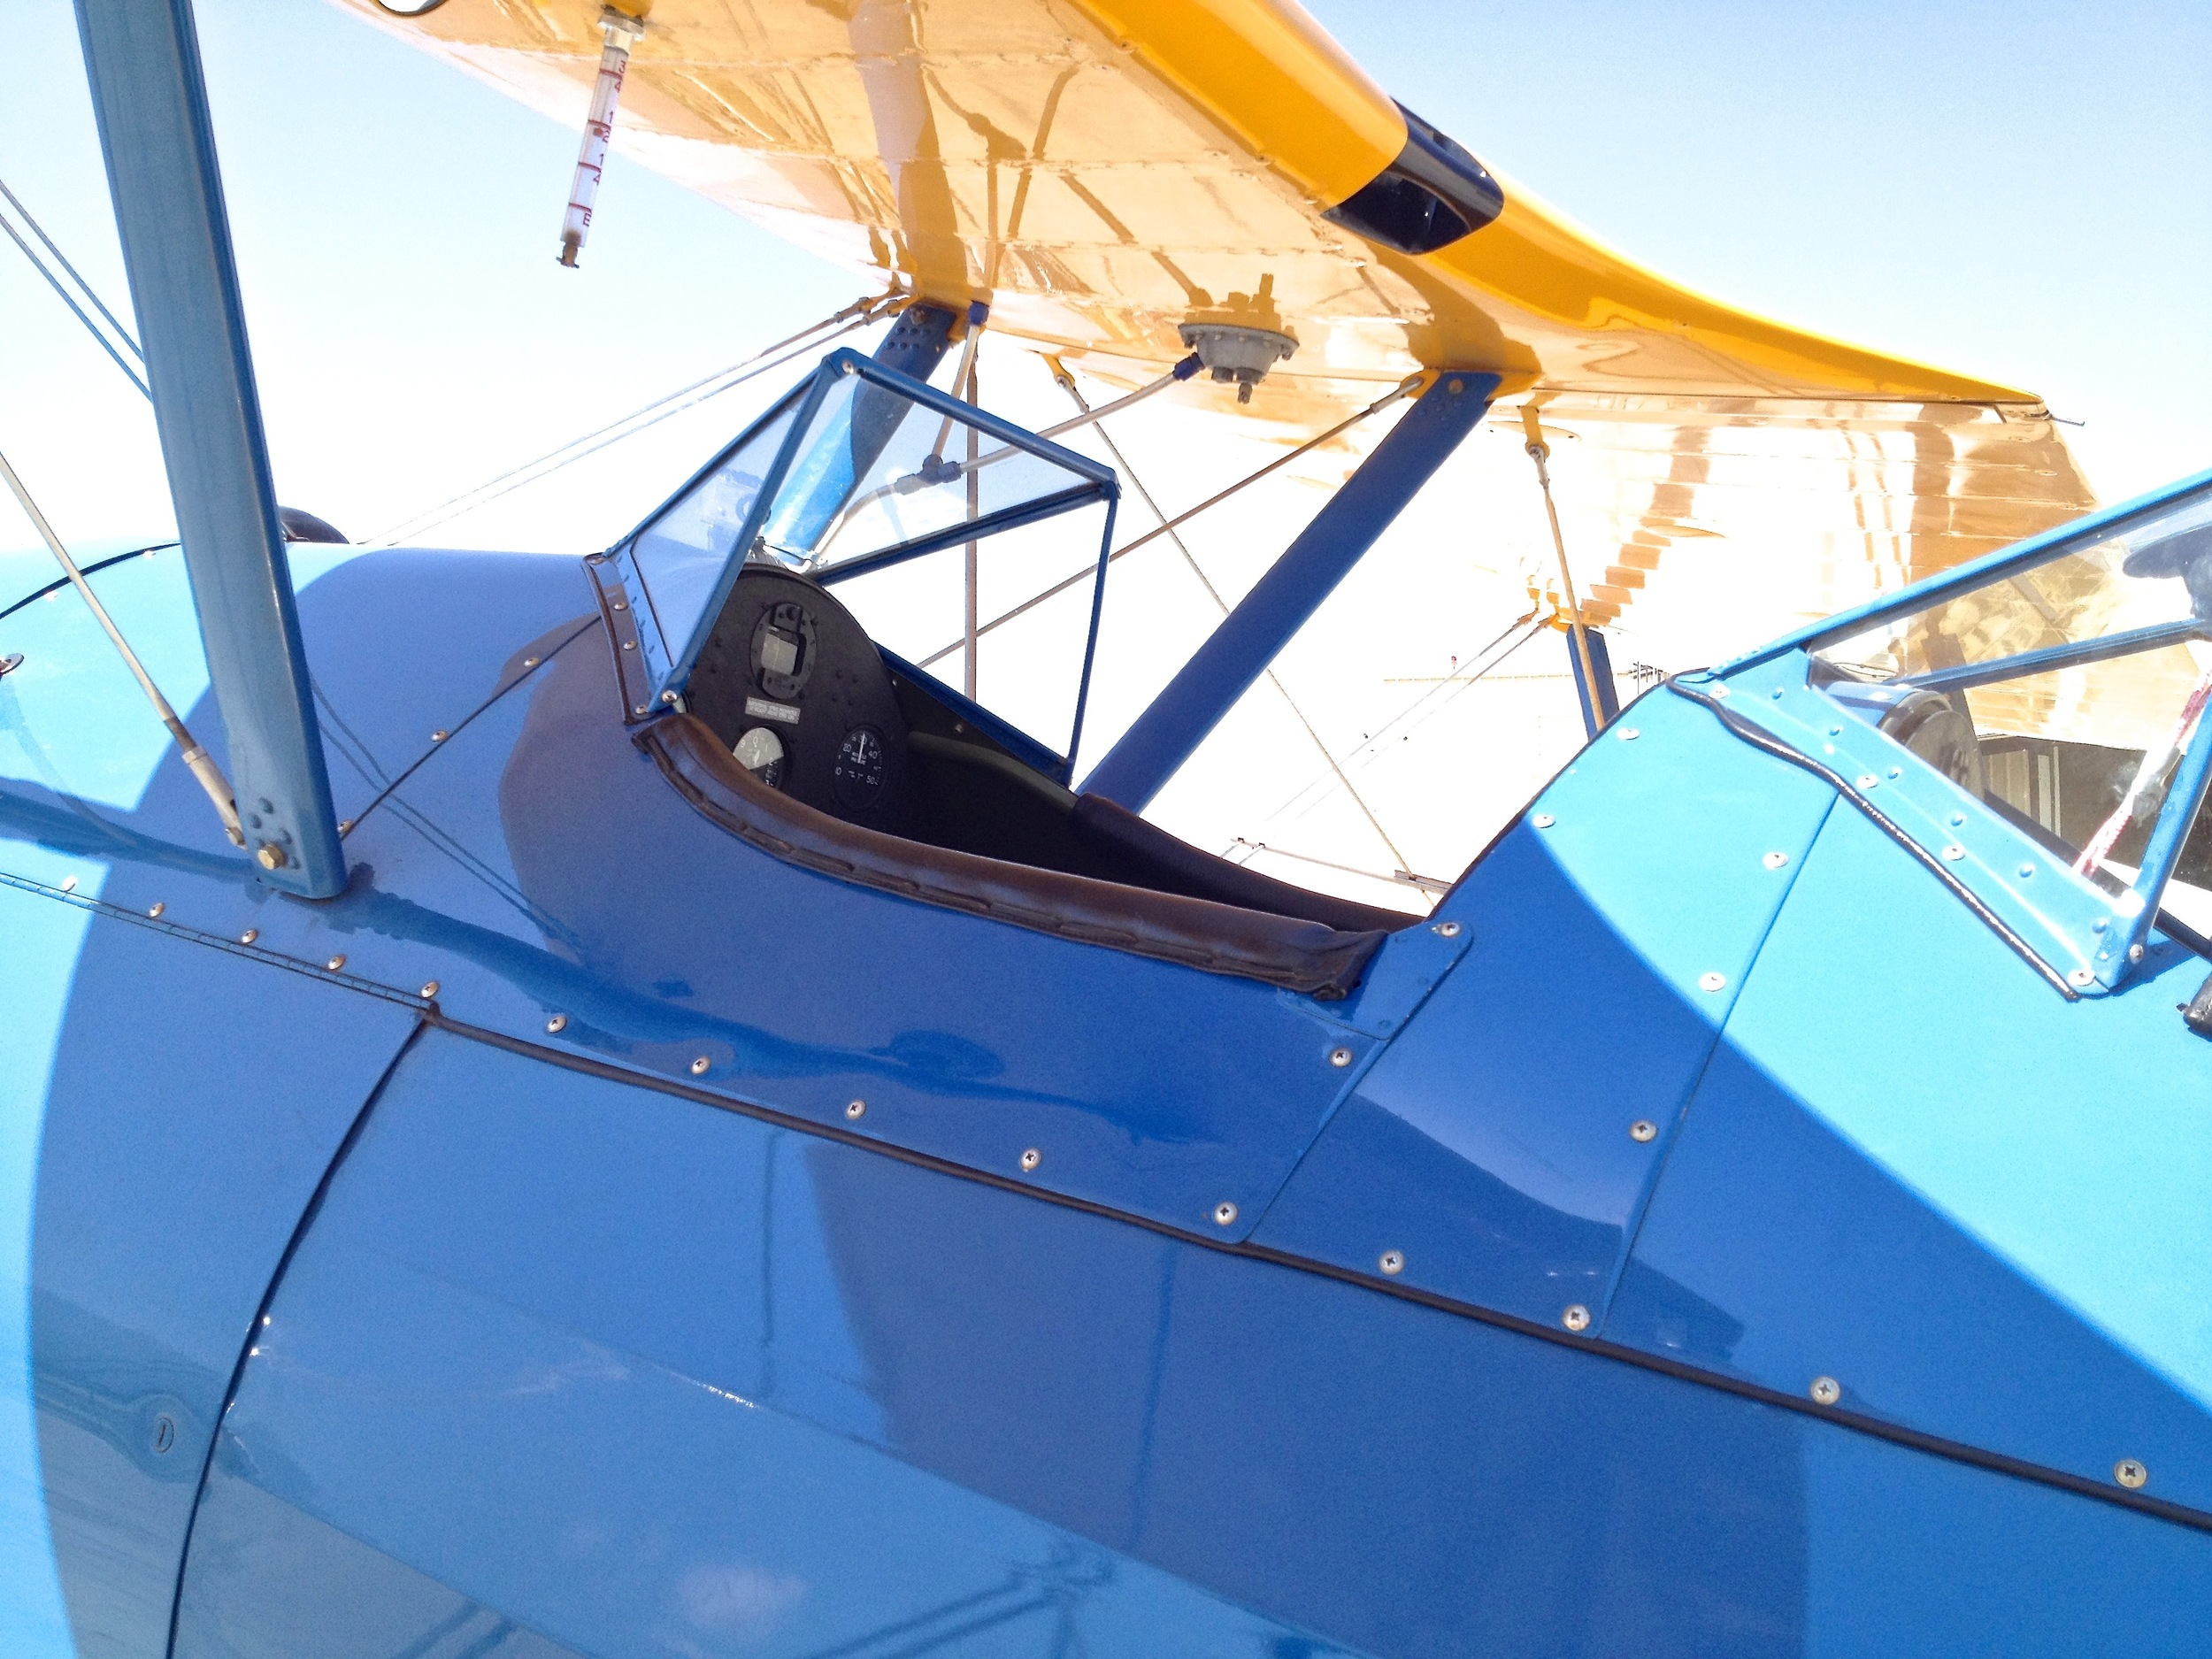 Front cockpit of the Stearman Primary Flight Trainer